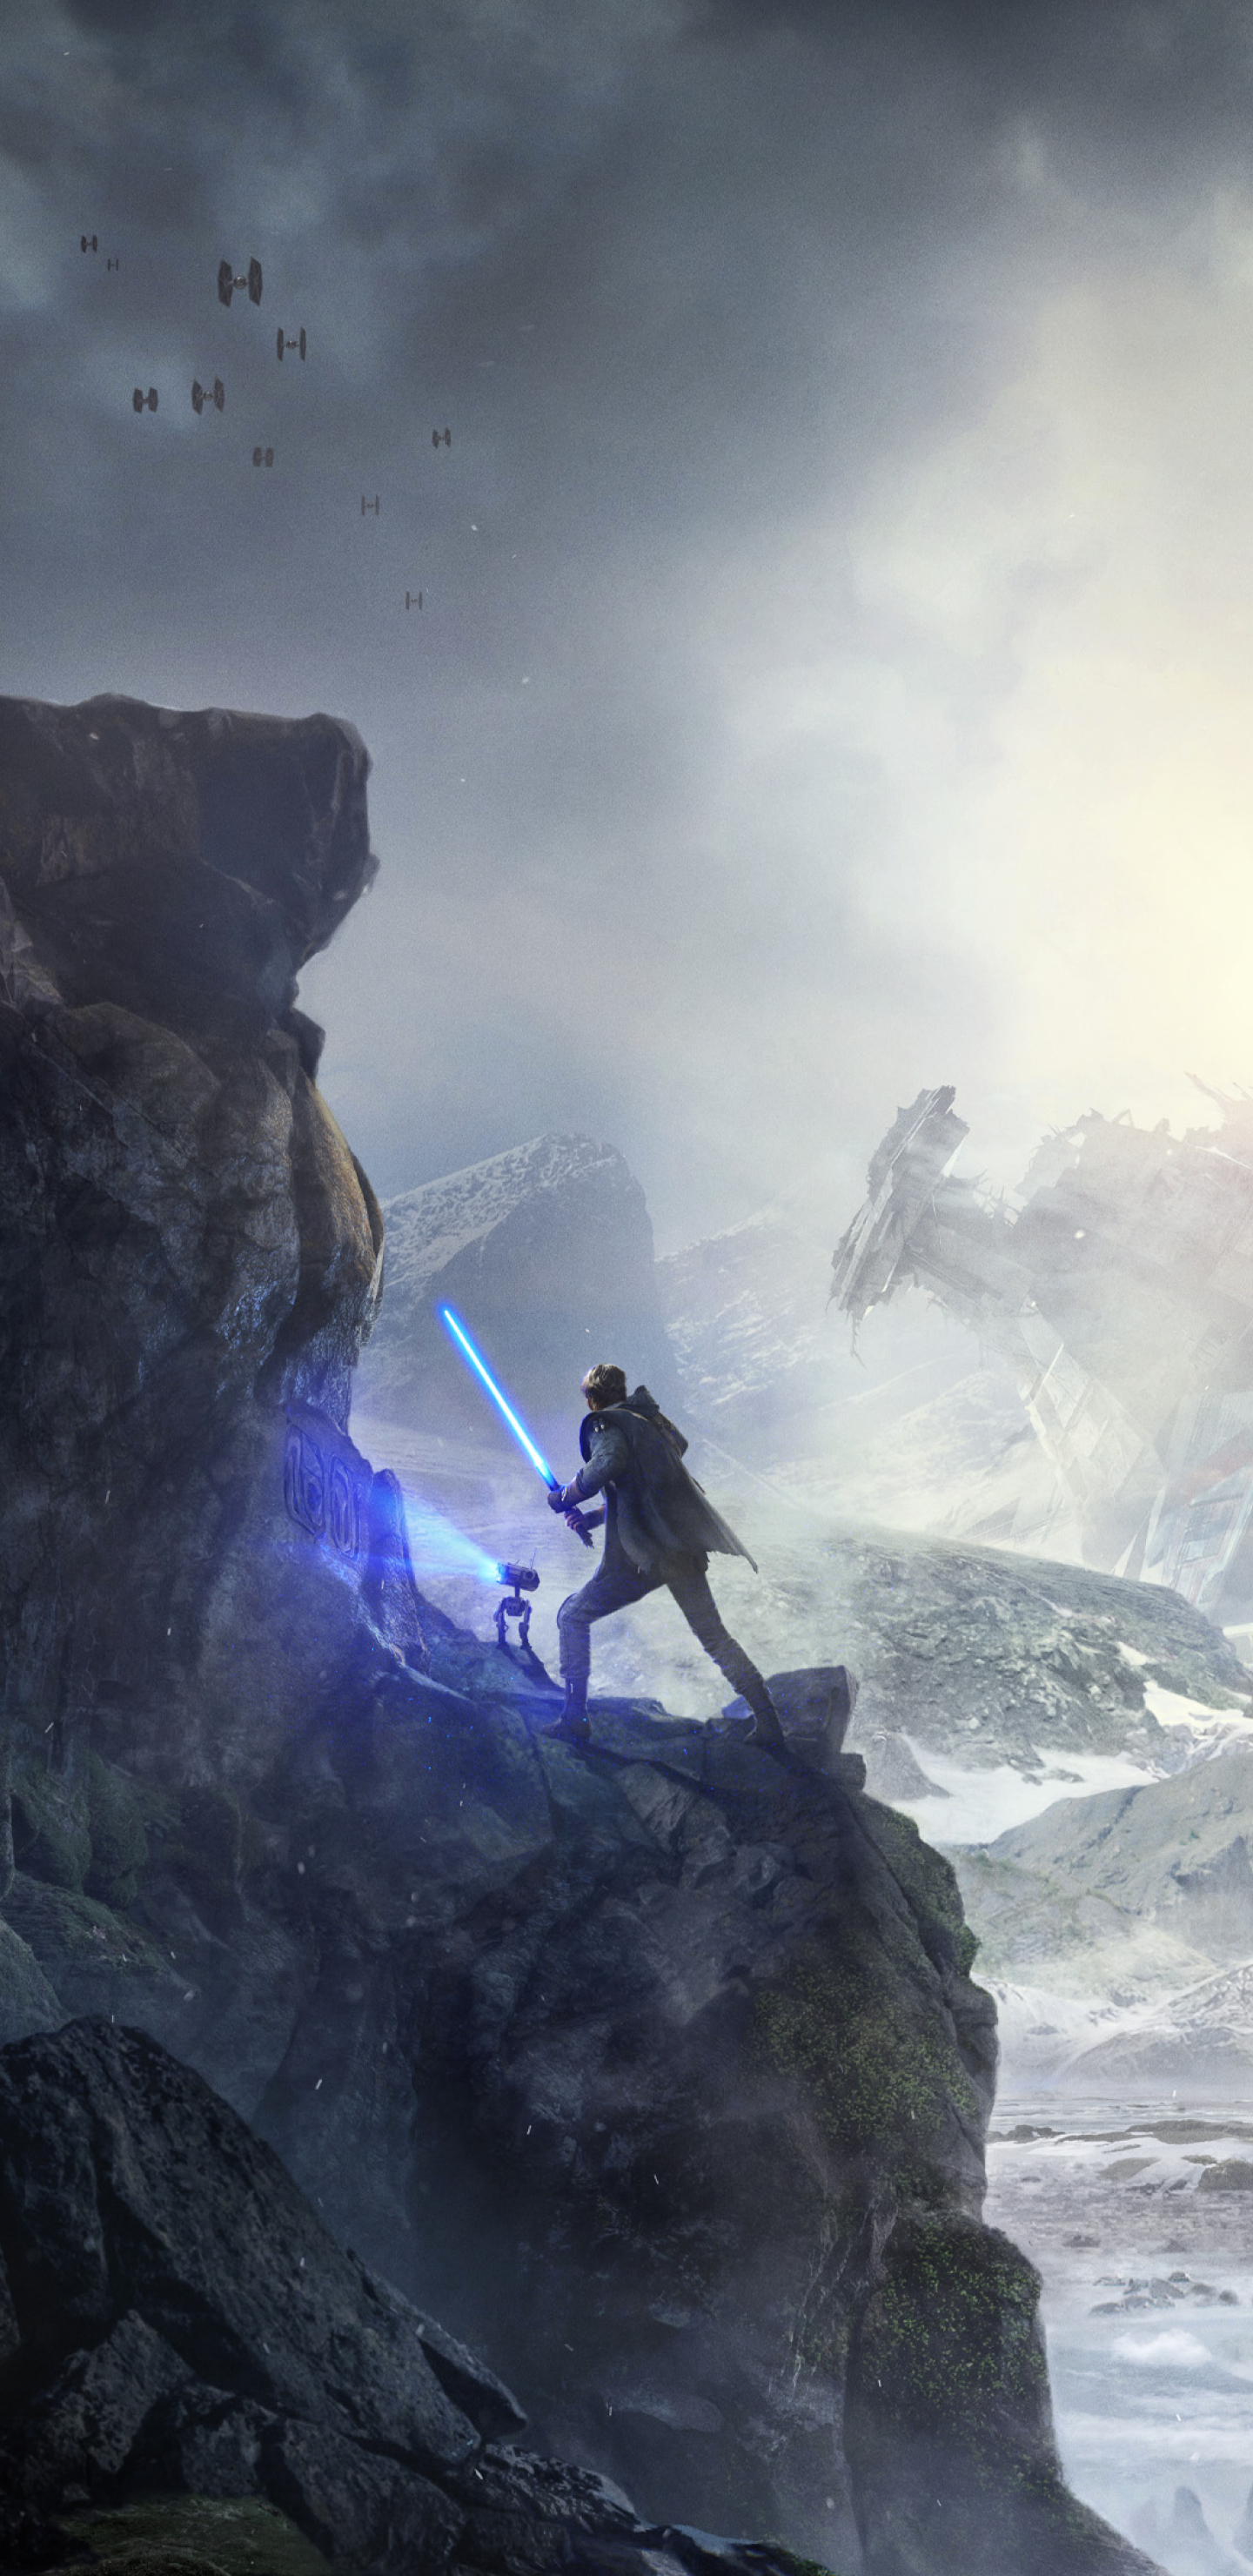 1440x2960 Star Wars Jedi Fallen Order Samsung Galaxy Note 9 8 S9 S8 S8 Qhd Wallpaper Hd Games 4k Wallpapers Images Photos And Background